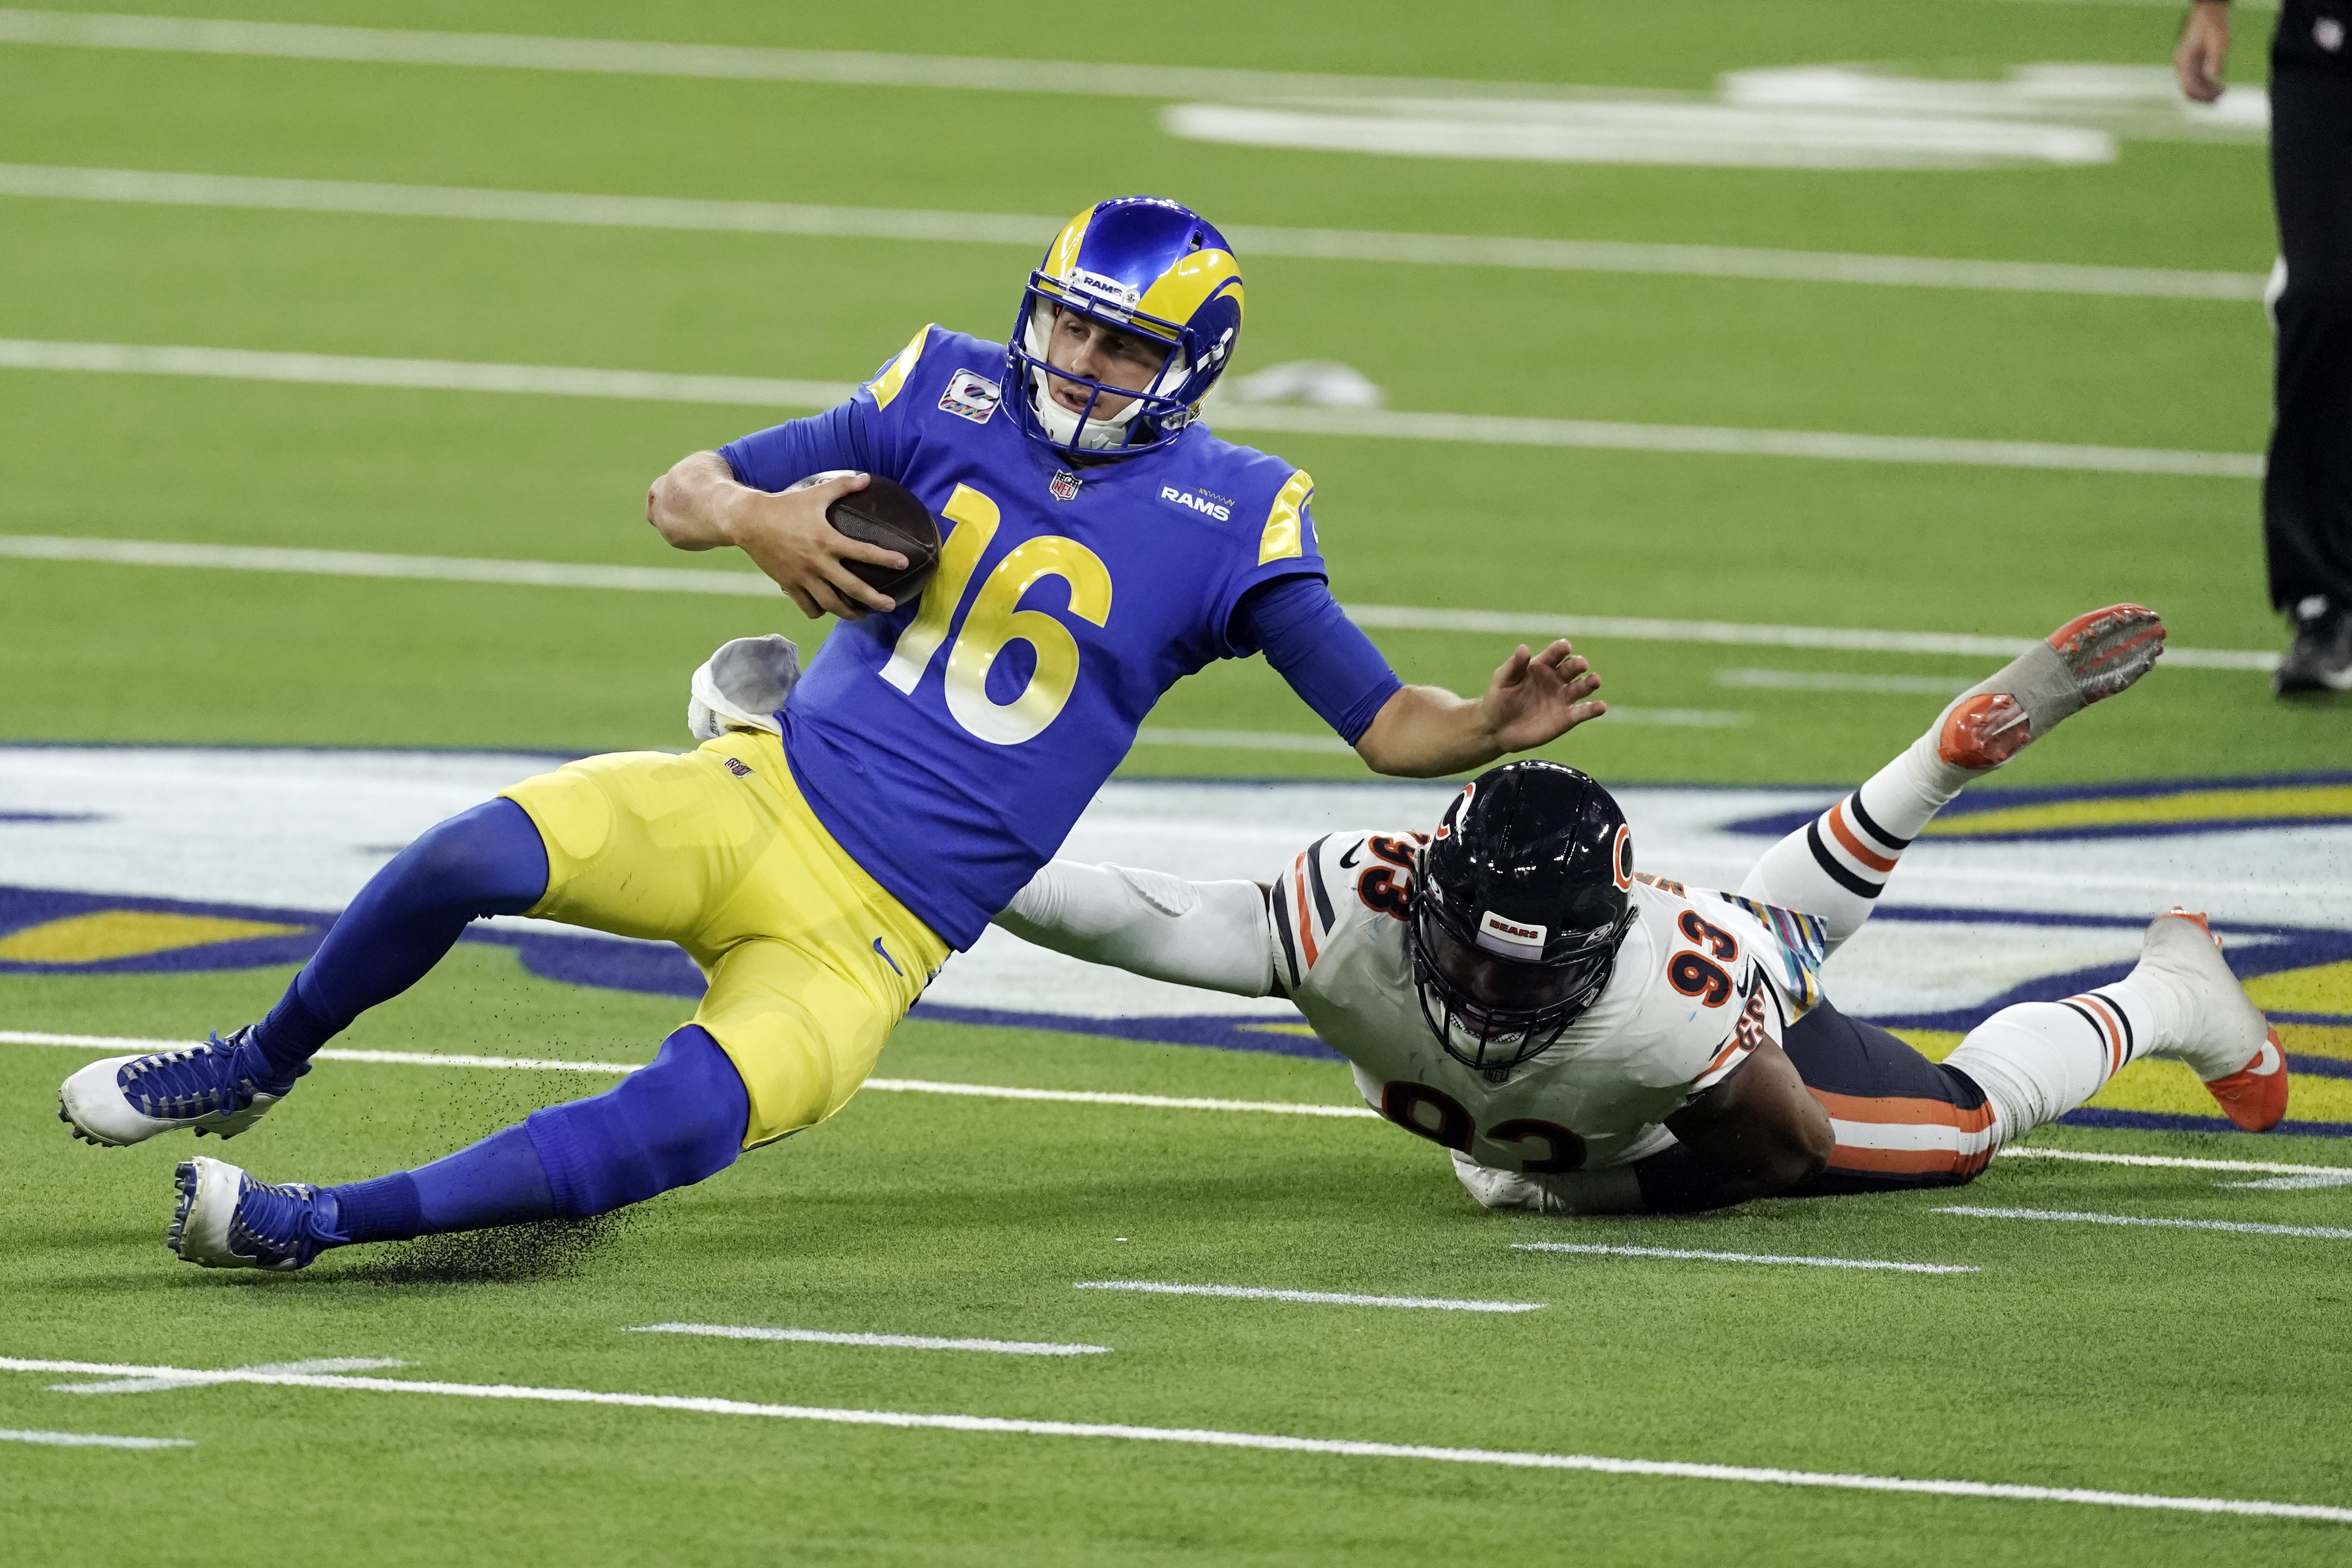 This play featuring Jared Goff and James Vaughters from Monday's Bears-Rams game might have cost a fantasy player a lot of money.